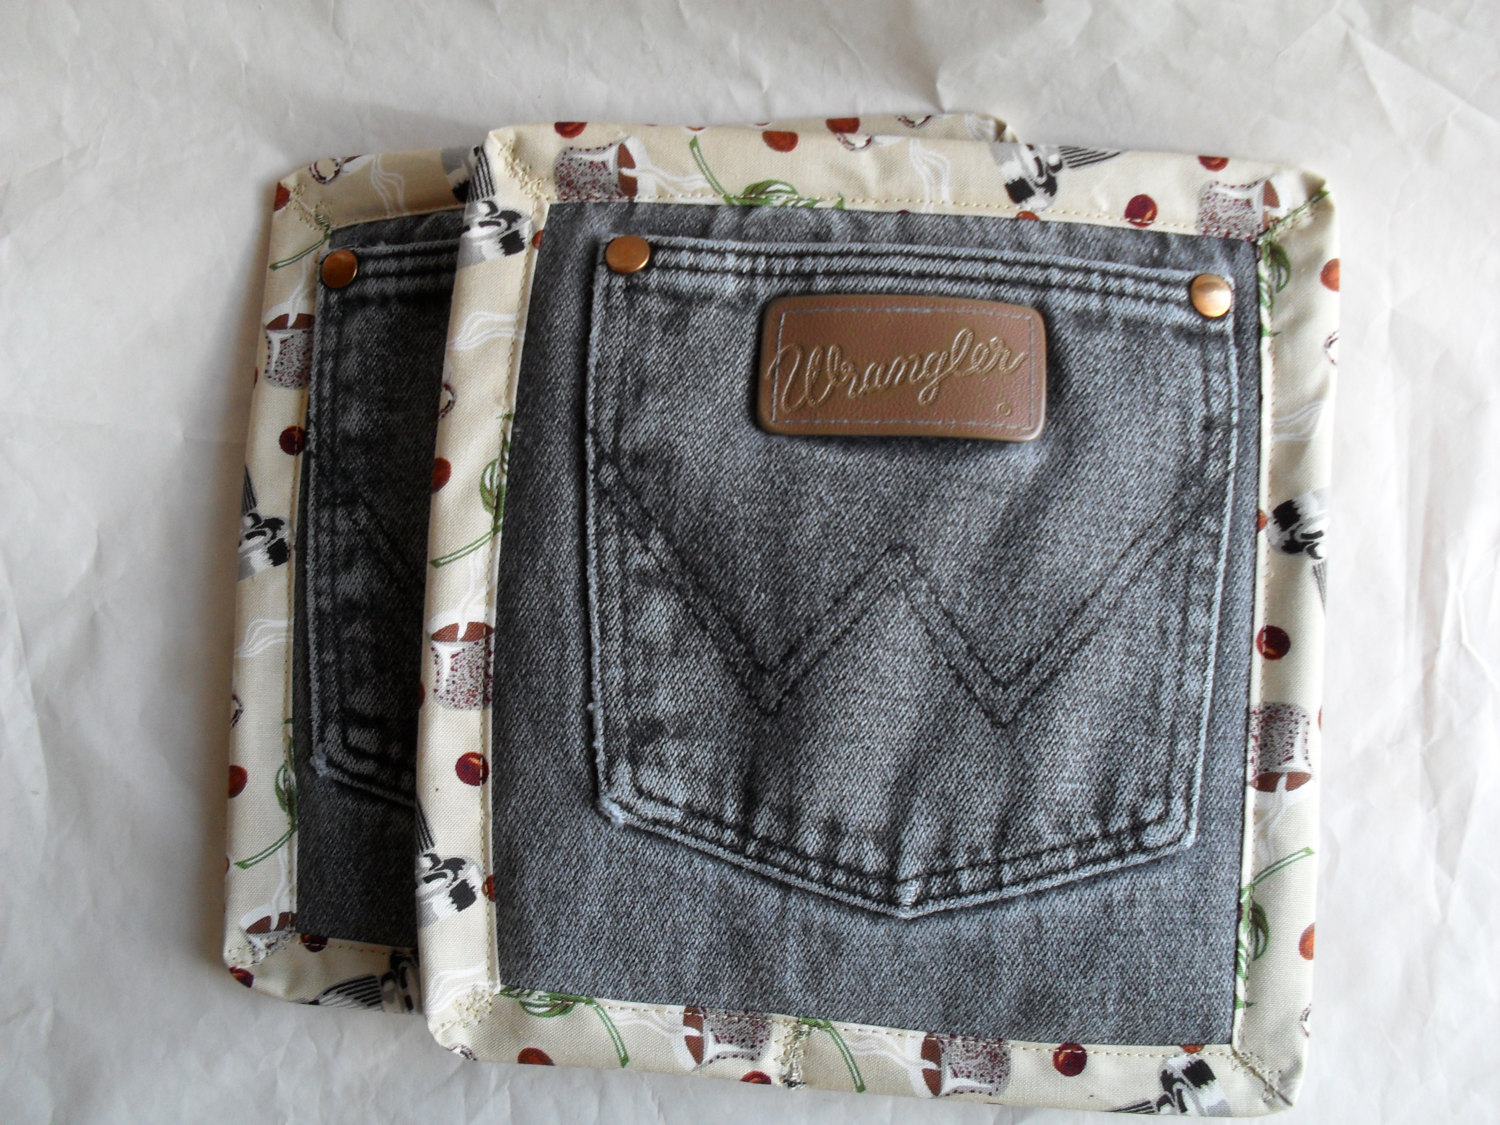 Denim pot holders 221 upcycling ideas that will blow for Jeans upcycling ideas